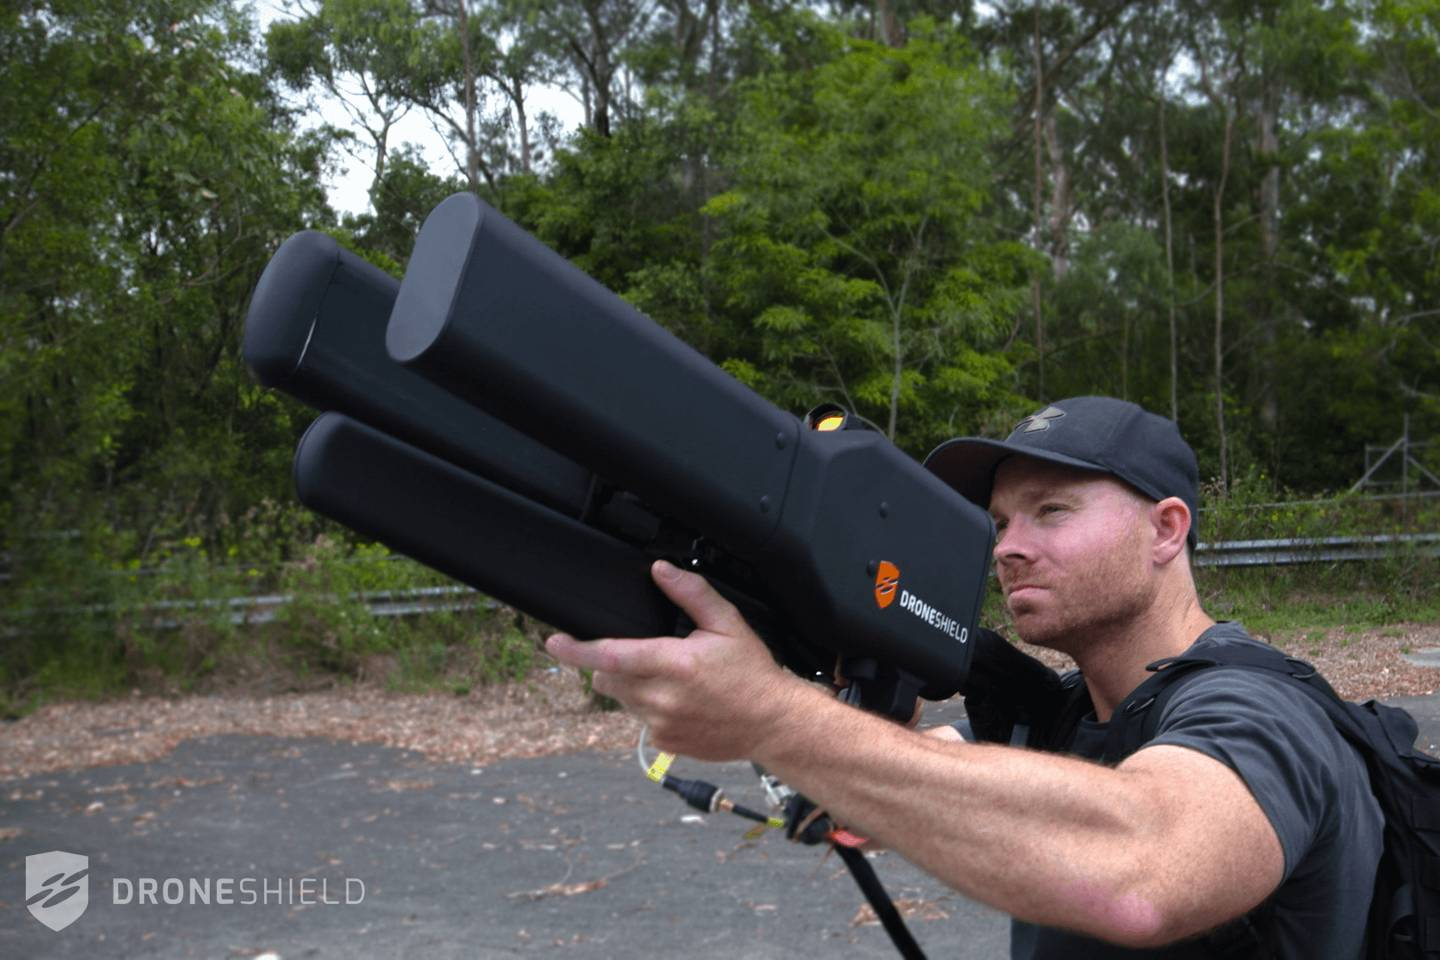 This ridiculous drone gun can shoot down UAVs from 2km away